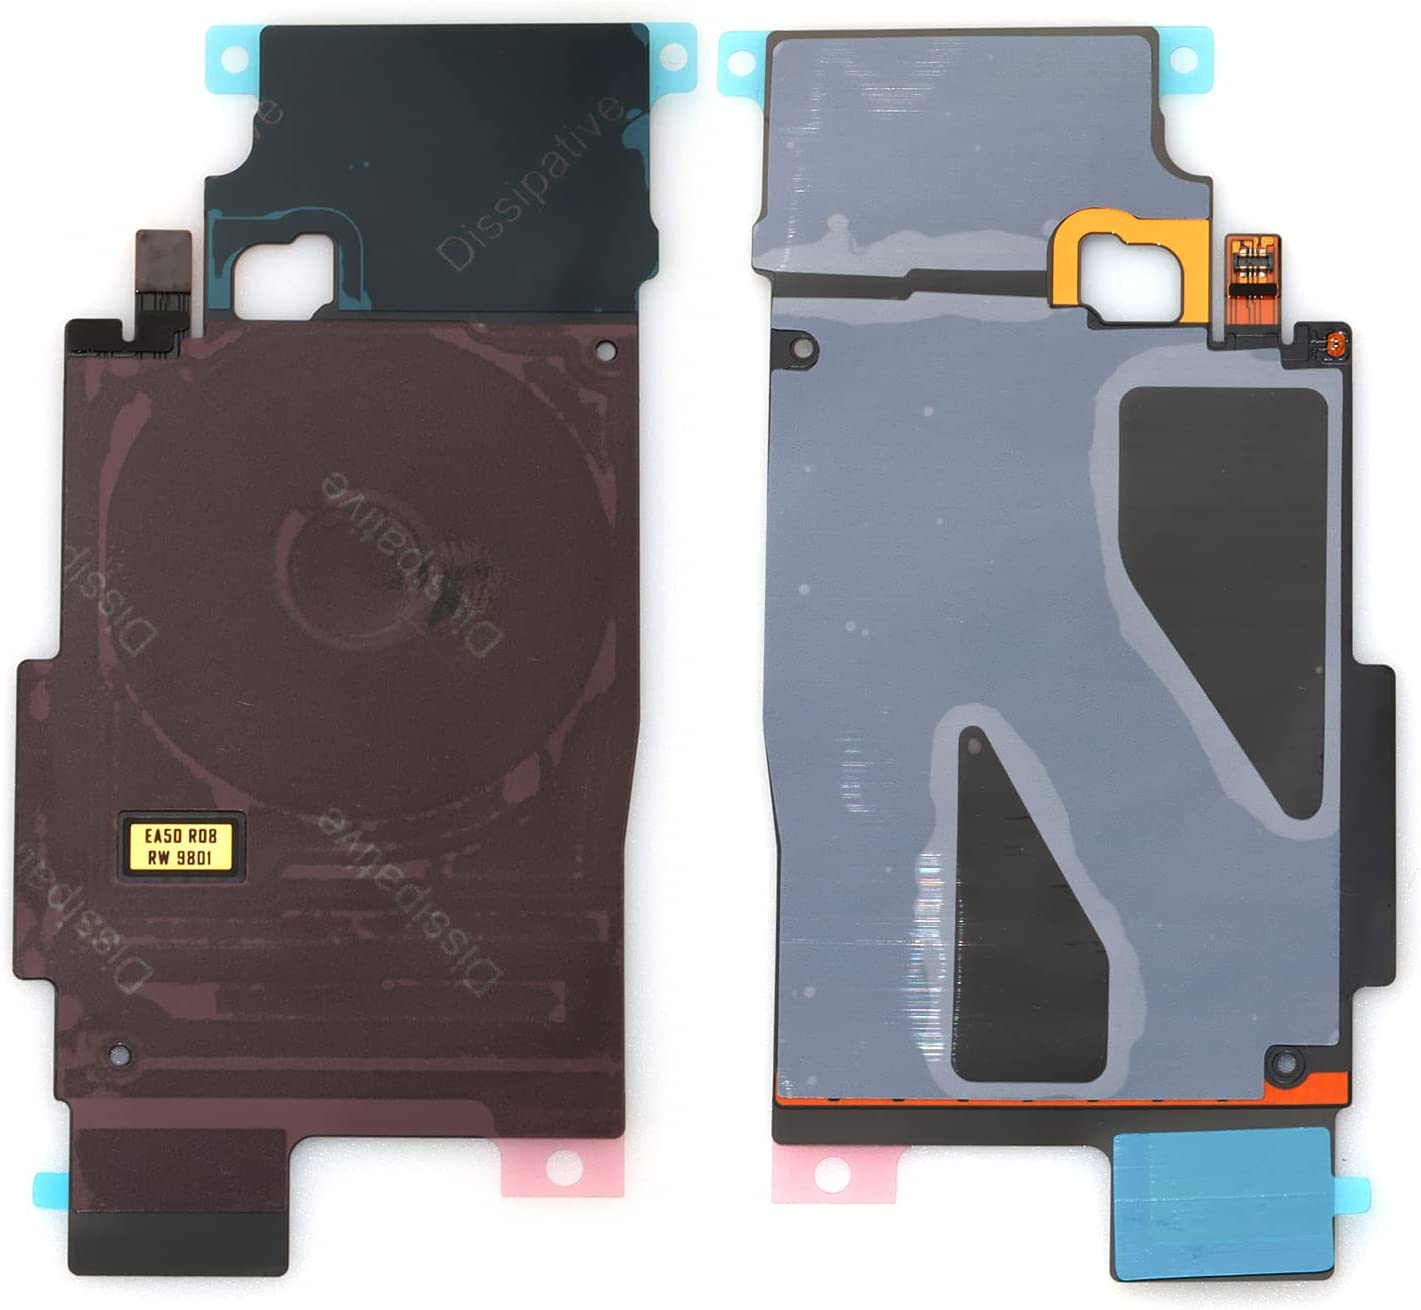 Replacement Part for Samsung Galaxy Note 10 SM-N970F/DS SM-N970F Wireless Charging NFC Signal Antenna Flex Cable